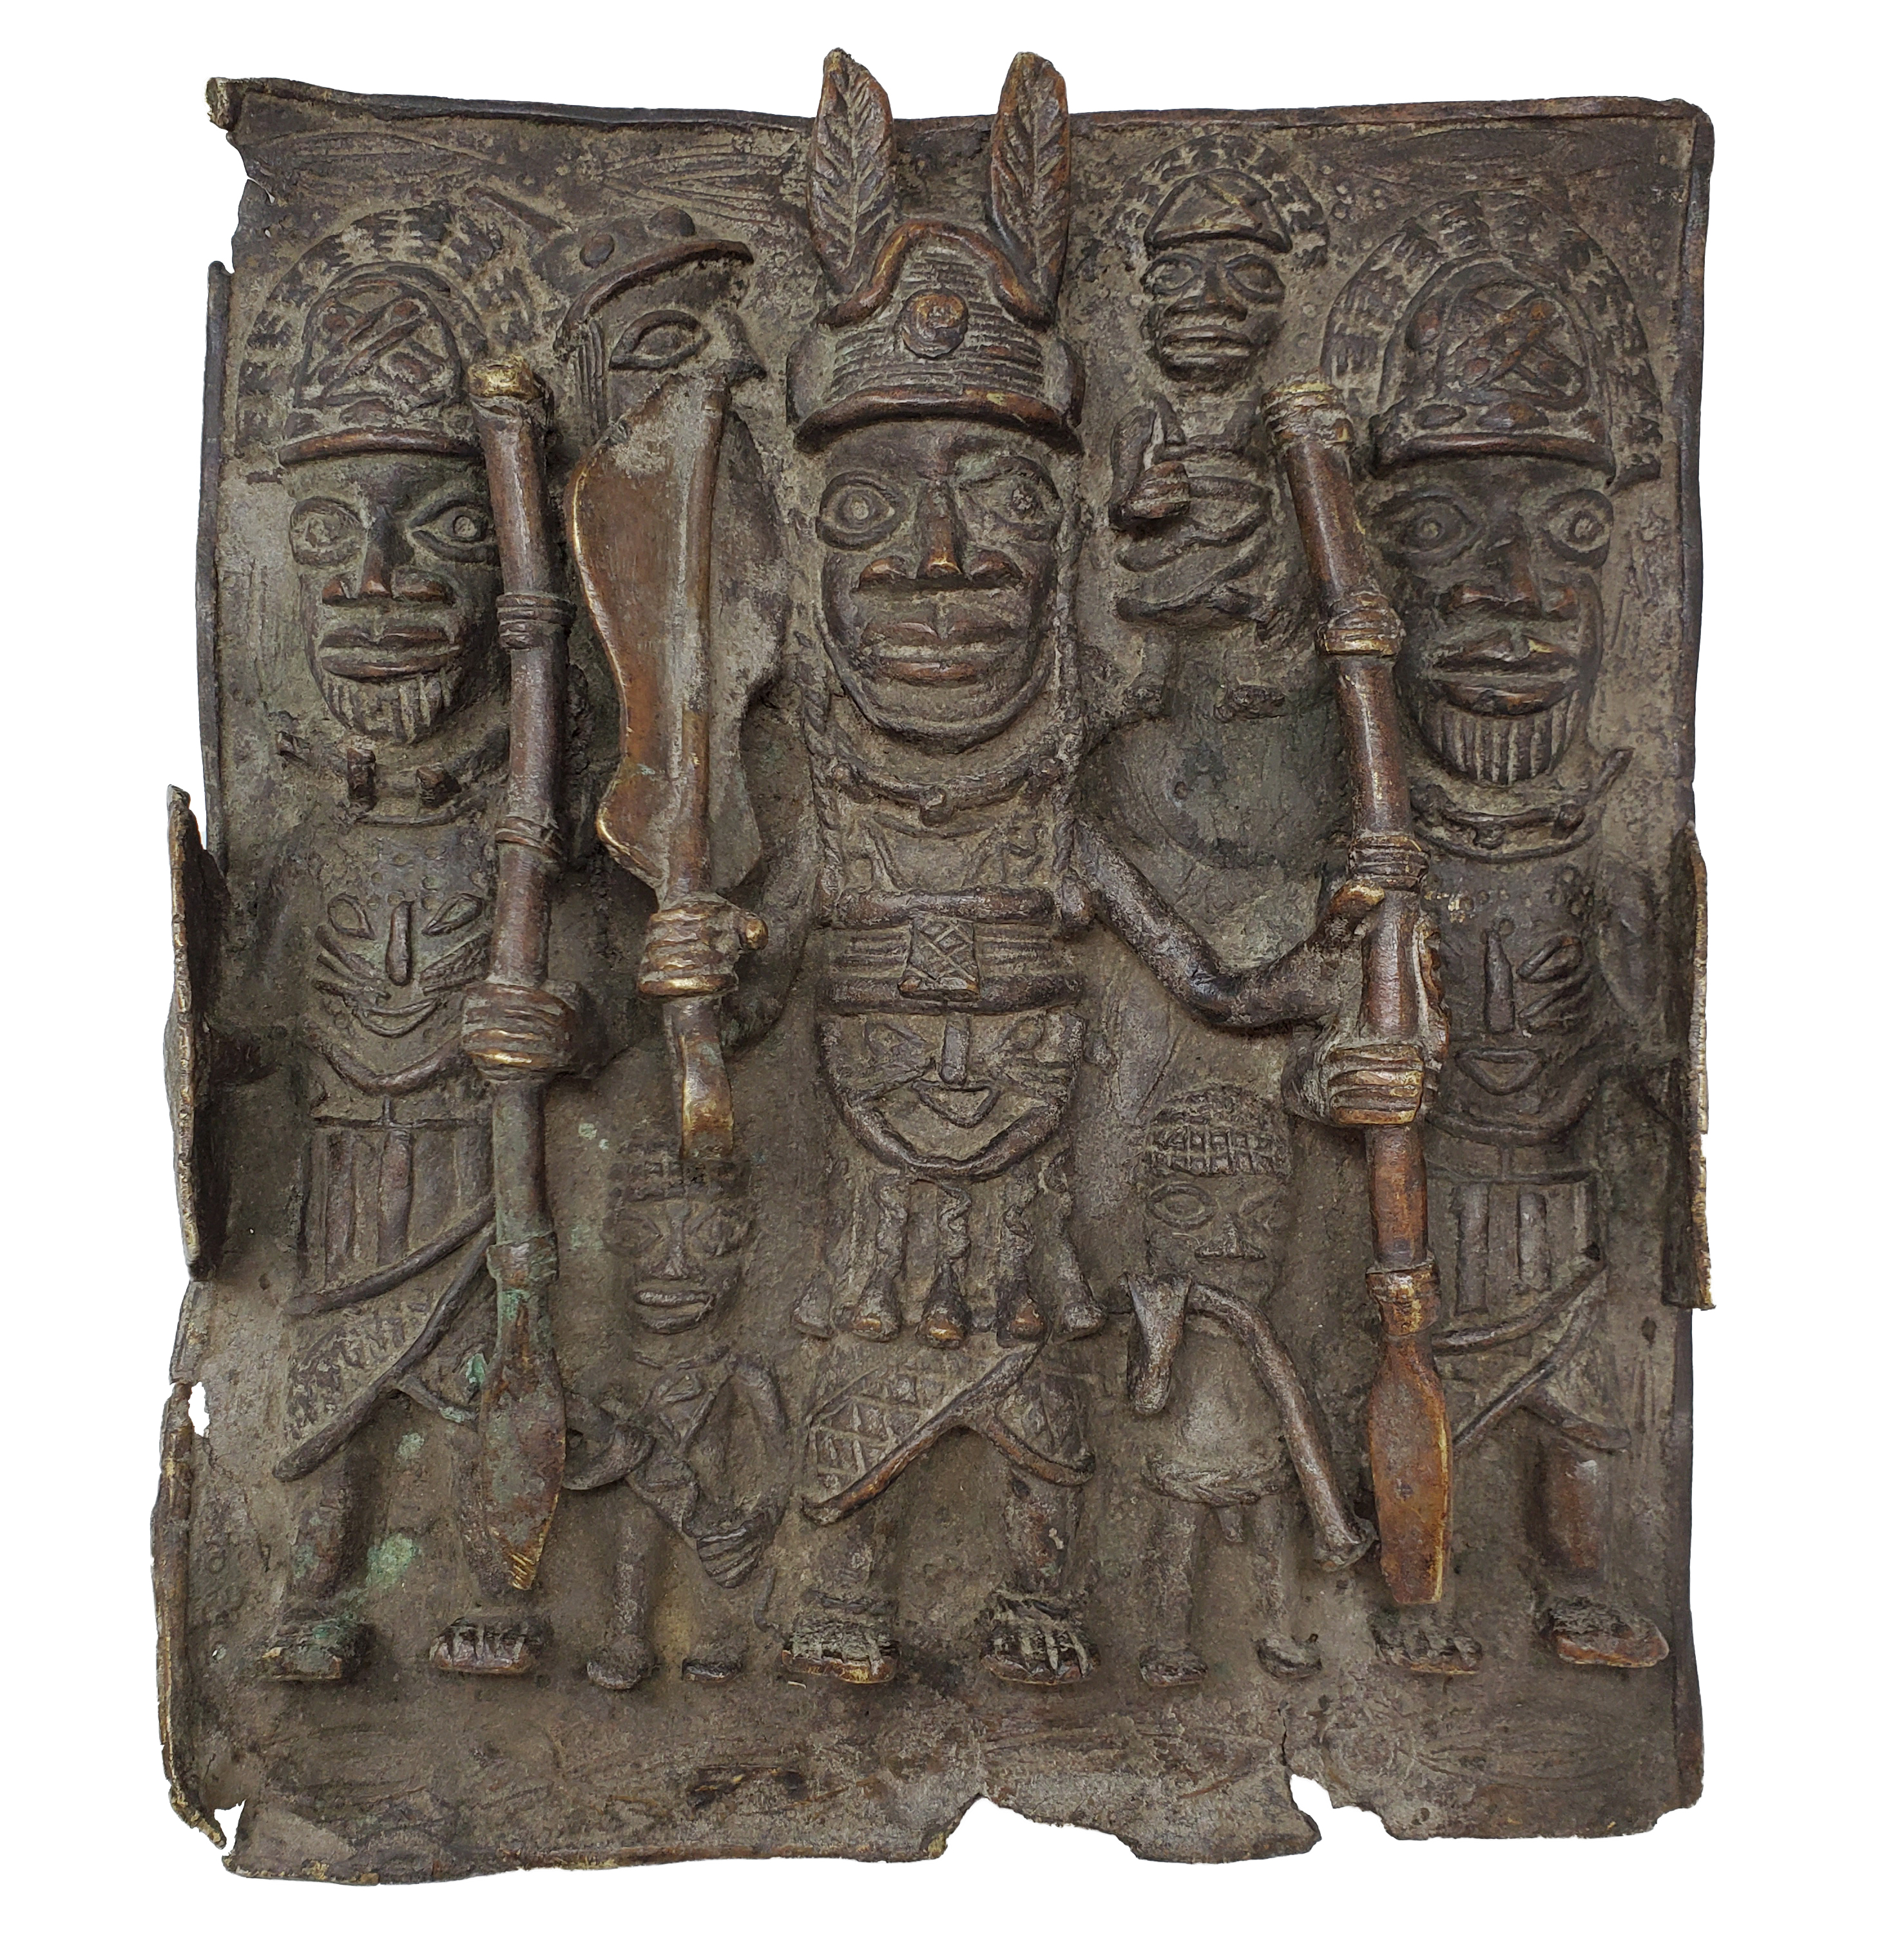 benin-bronze-plaque-large.jpg